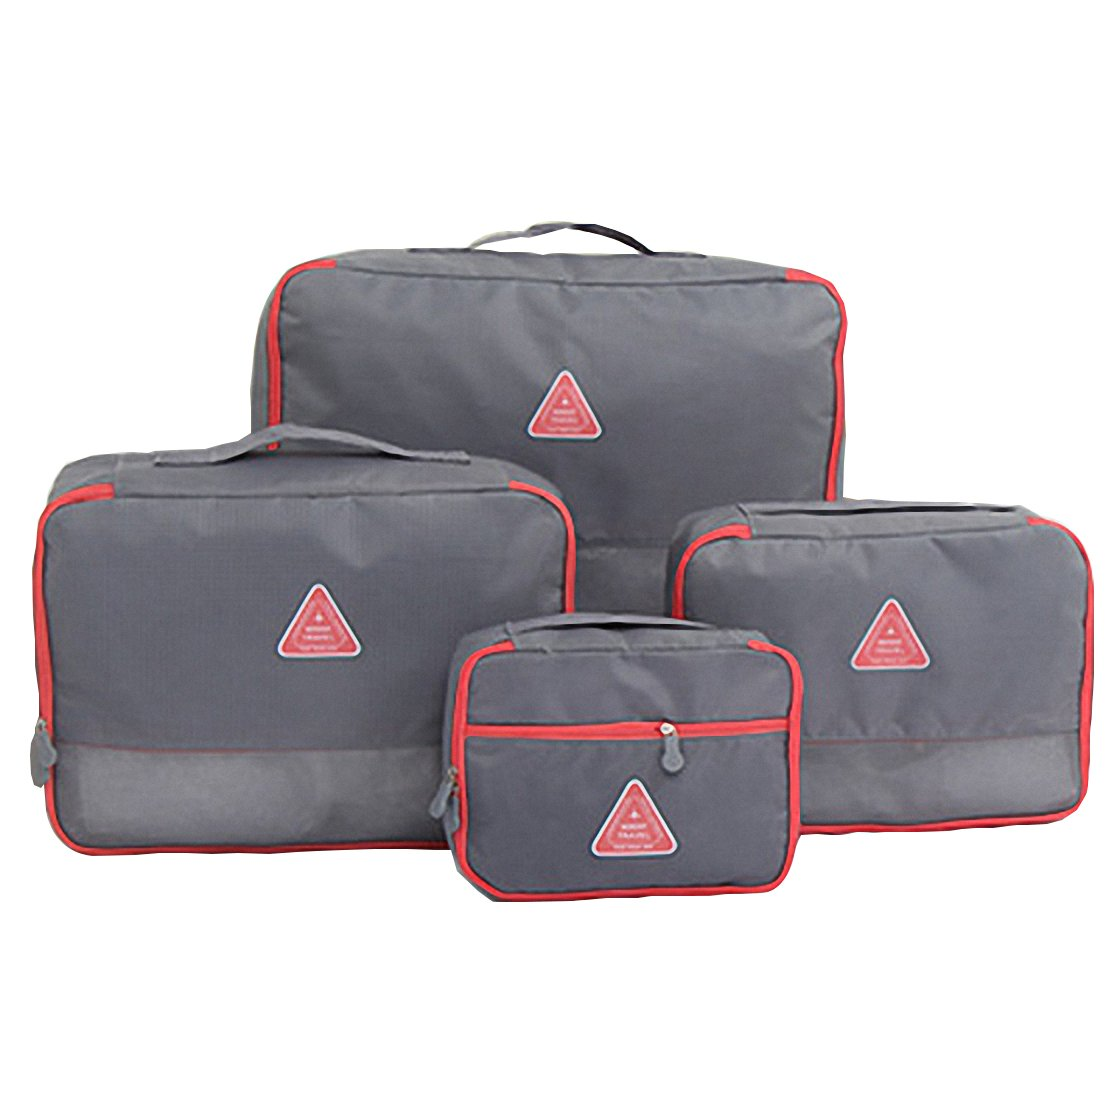 Travel Packing Organizers - Clothes Cubes Shoe Bags Laundry Pouches For Suitcase Luggage, Storage Organizer 4 Set Color Grey